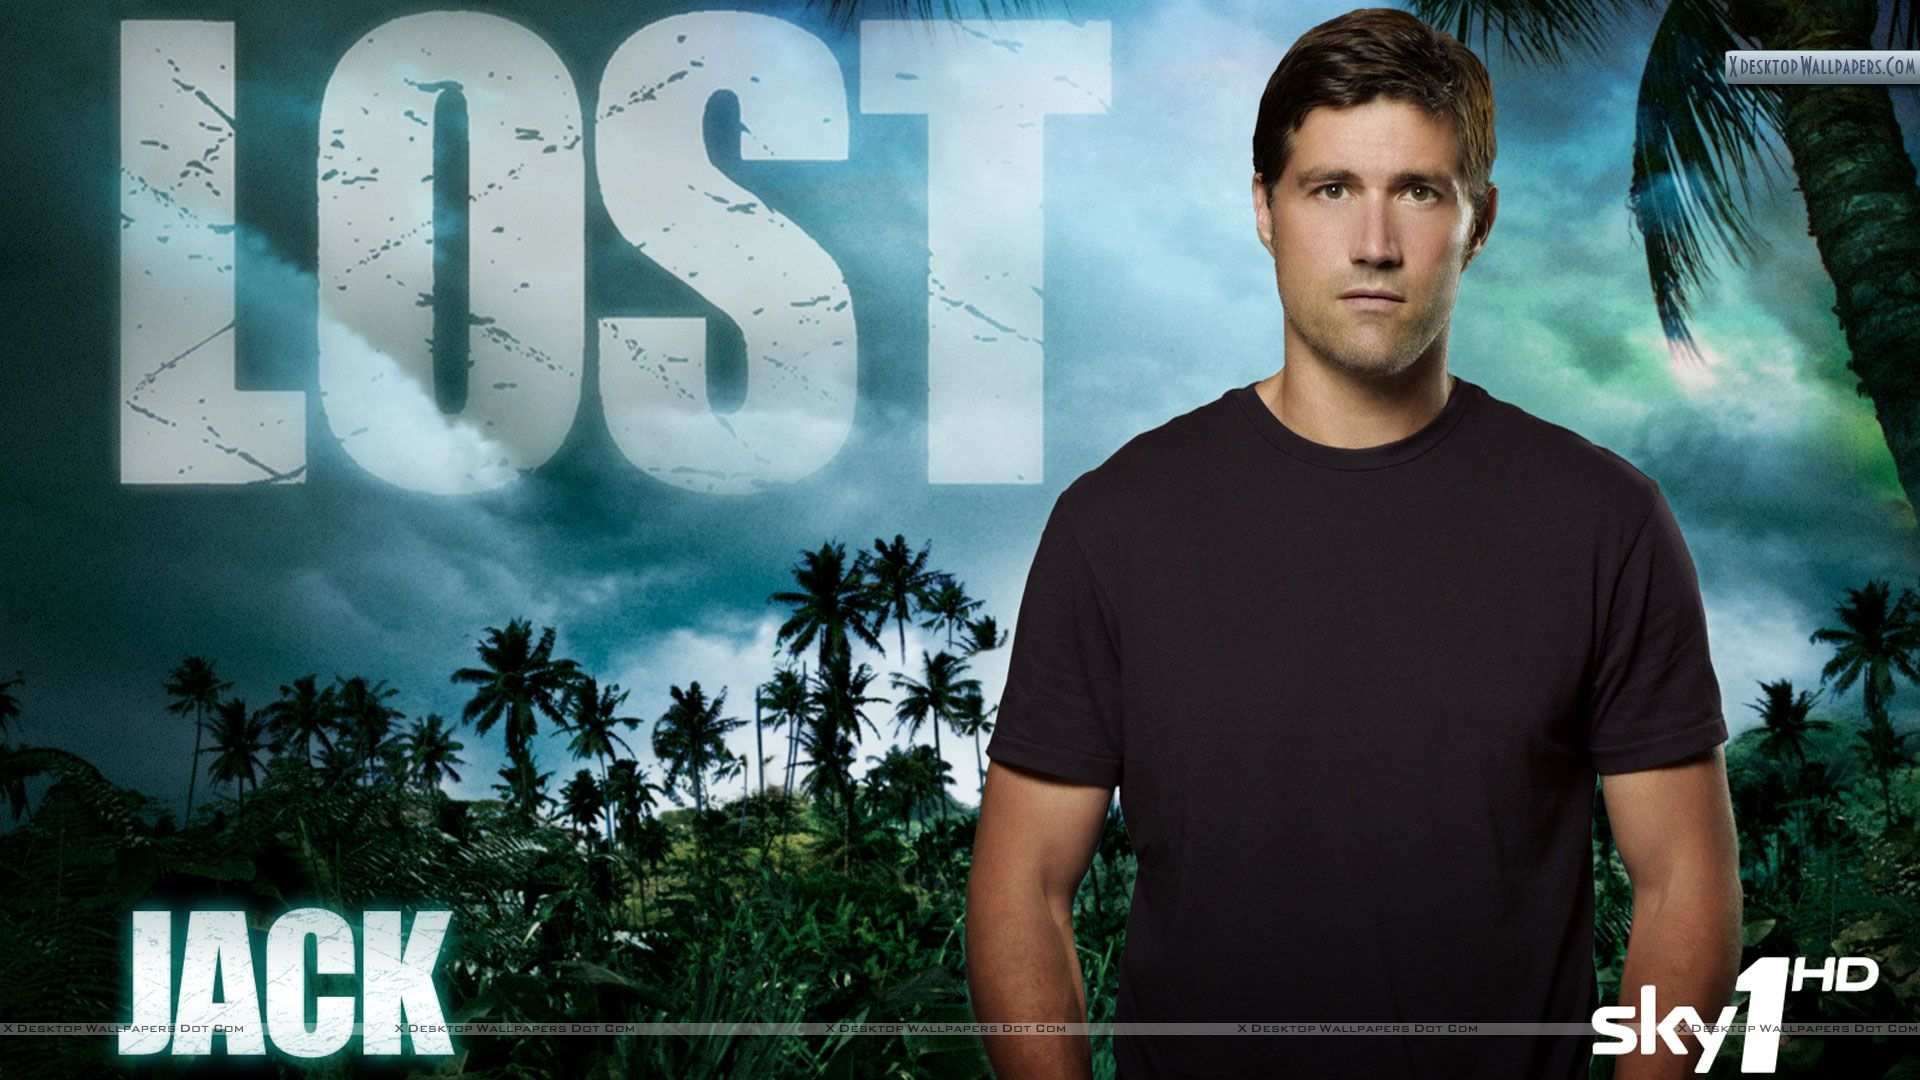 jack – lost tv series character wallpaper